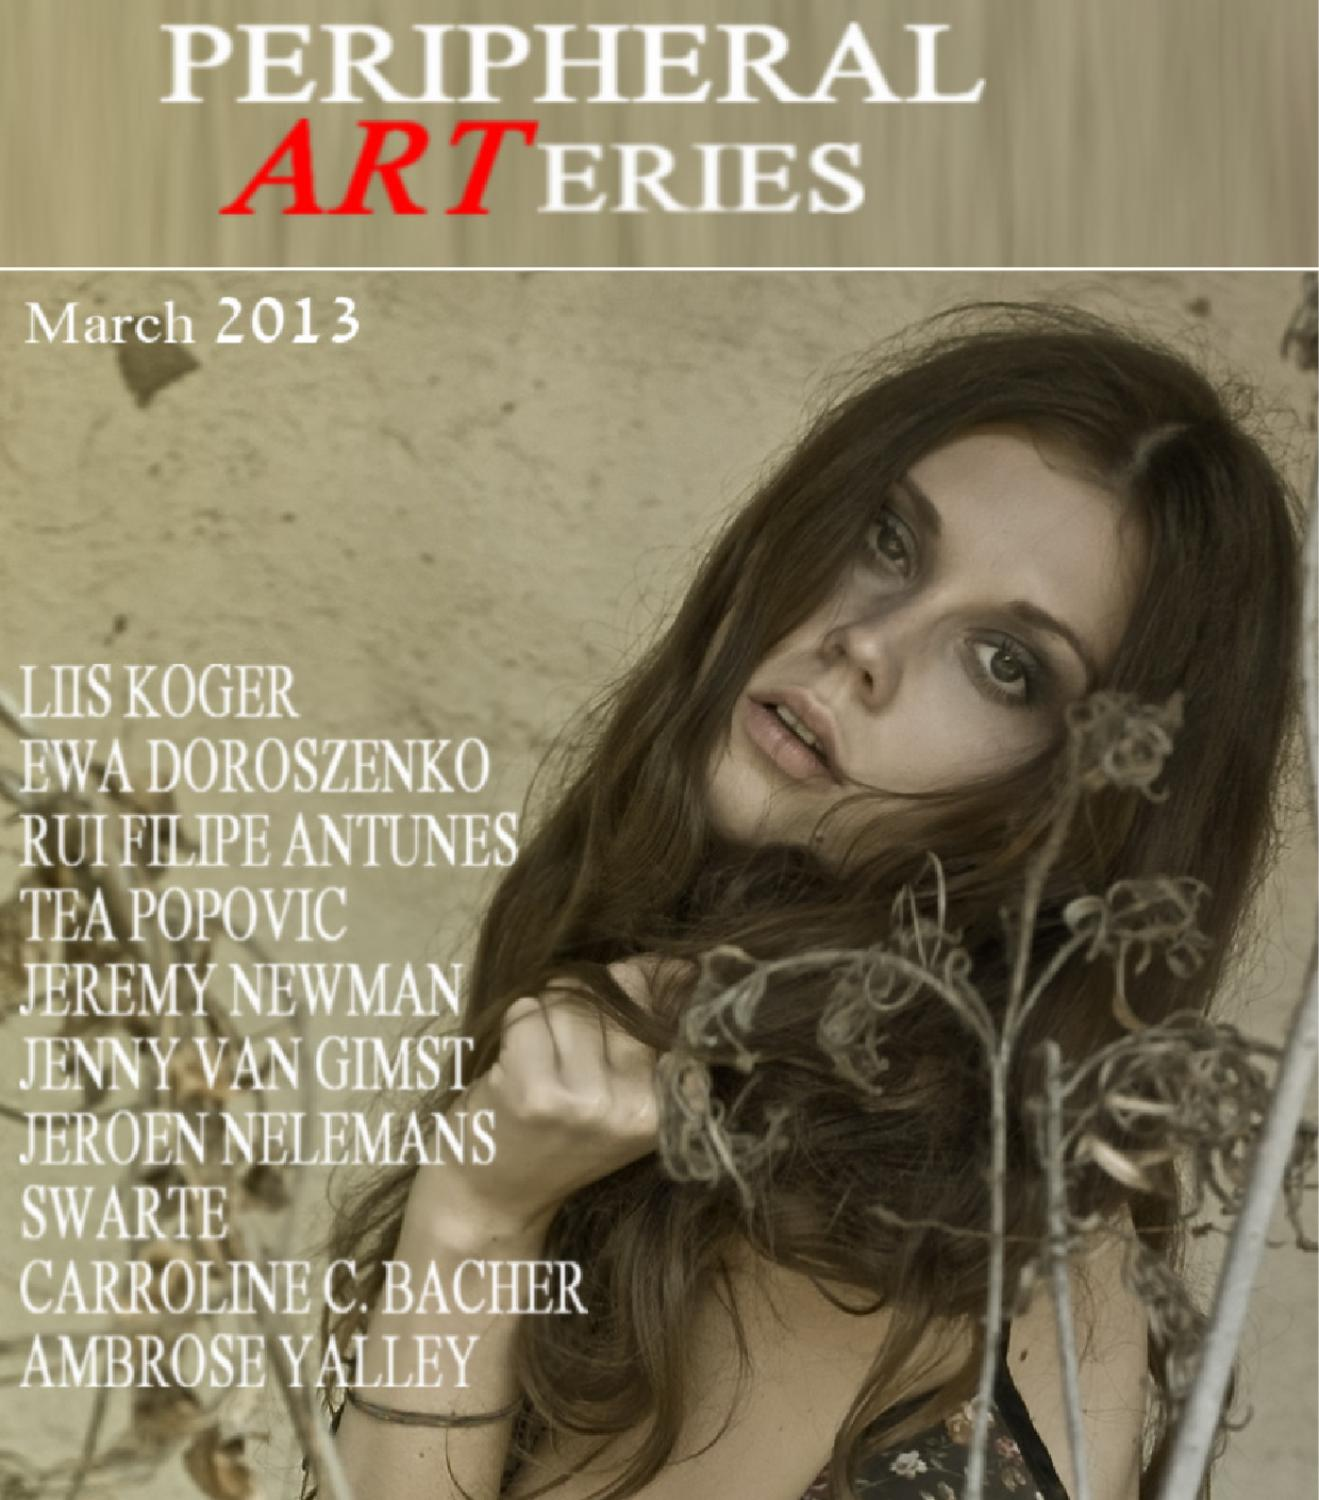 Peripheral arteries art review   march 2013 by artpress   issuu